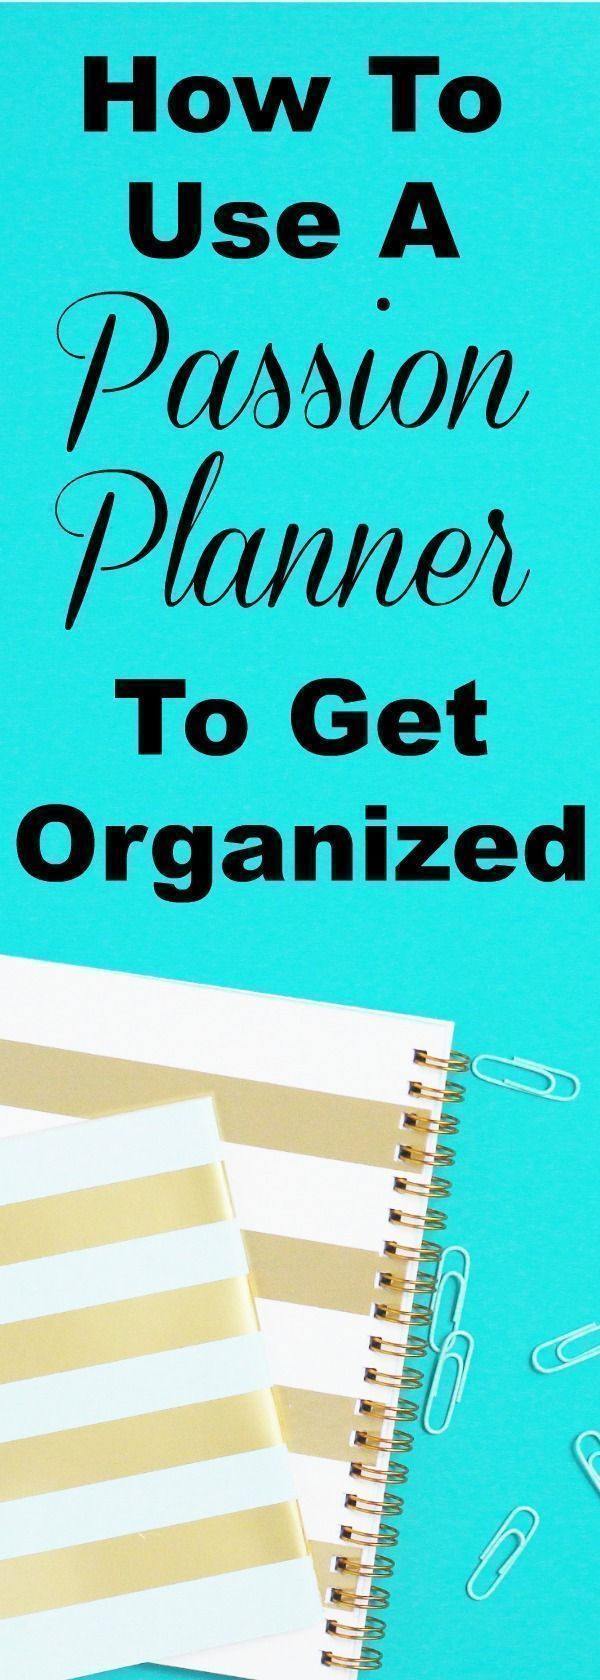 How to Use a Passion Planner to Get Organized + Review